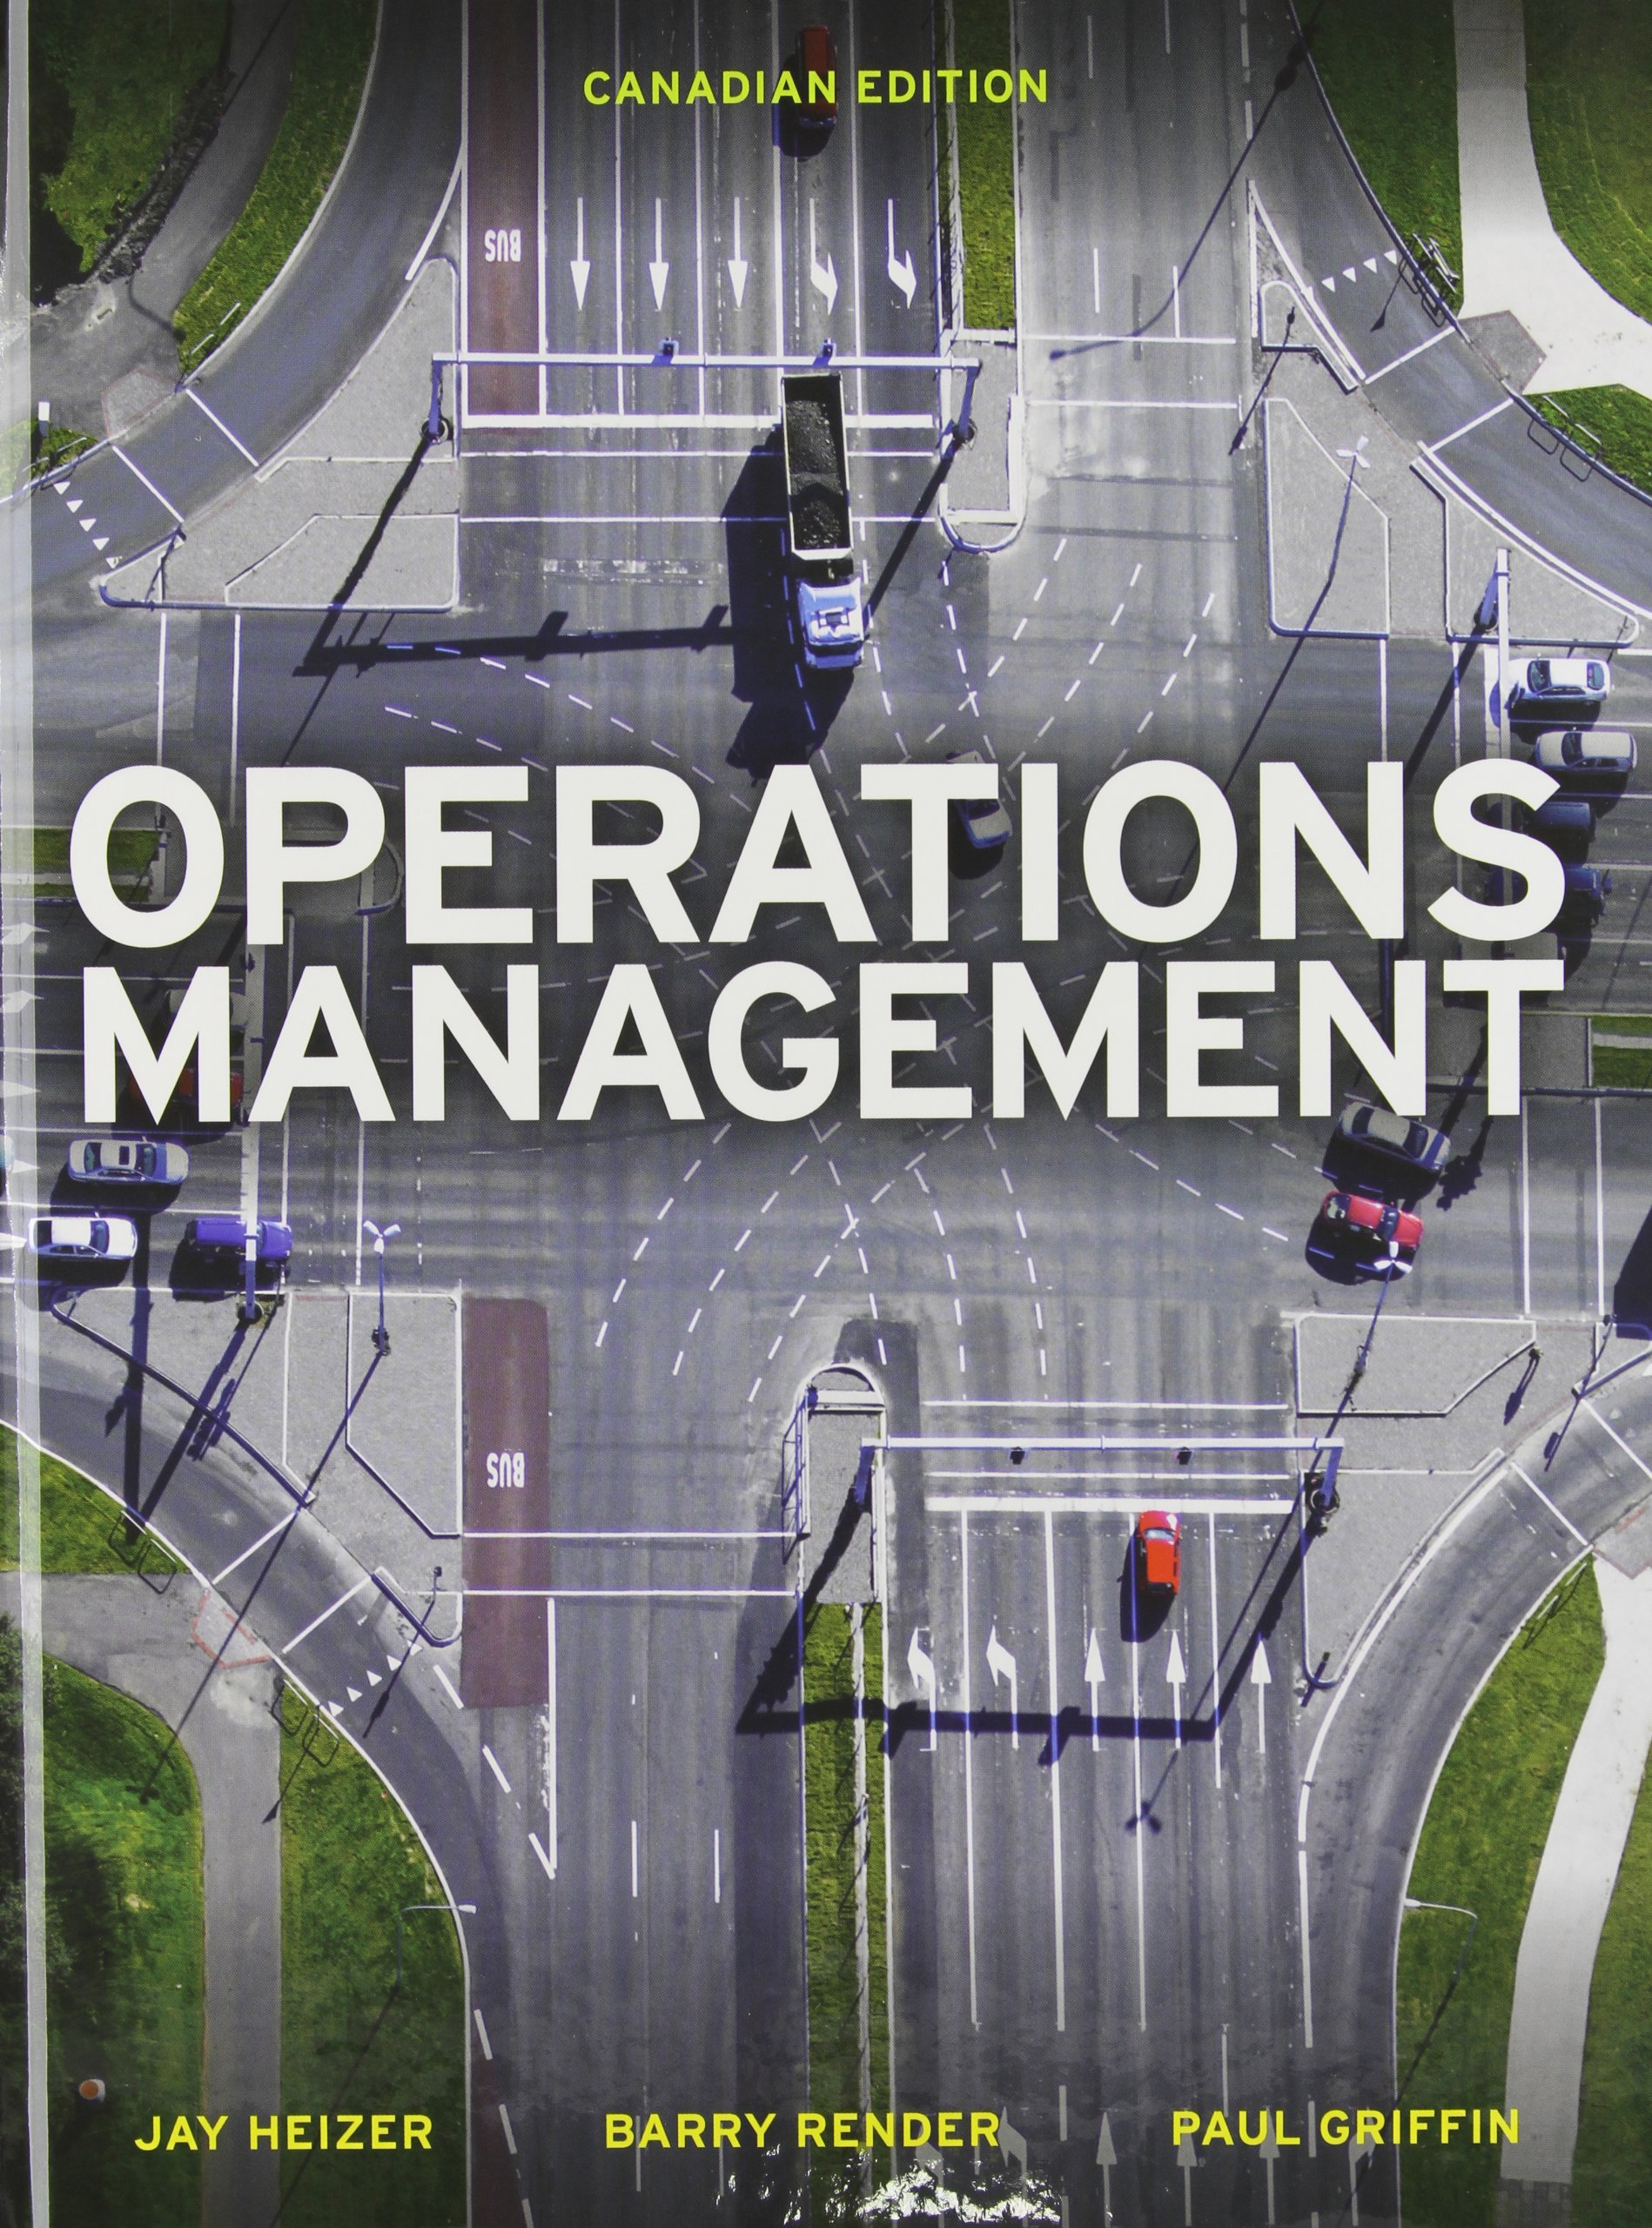 Operations management first canadian edition plus myomlab with operations management first canadian edition plus myomlab with pearson etext access card package jay heizer barry render paul griffin 9780133357516 fandeluxe Image collections